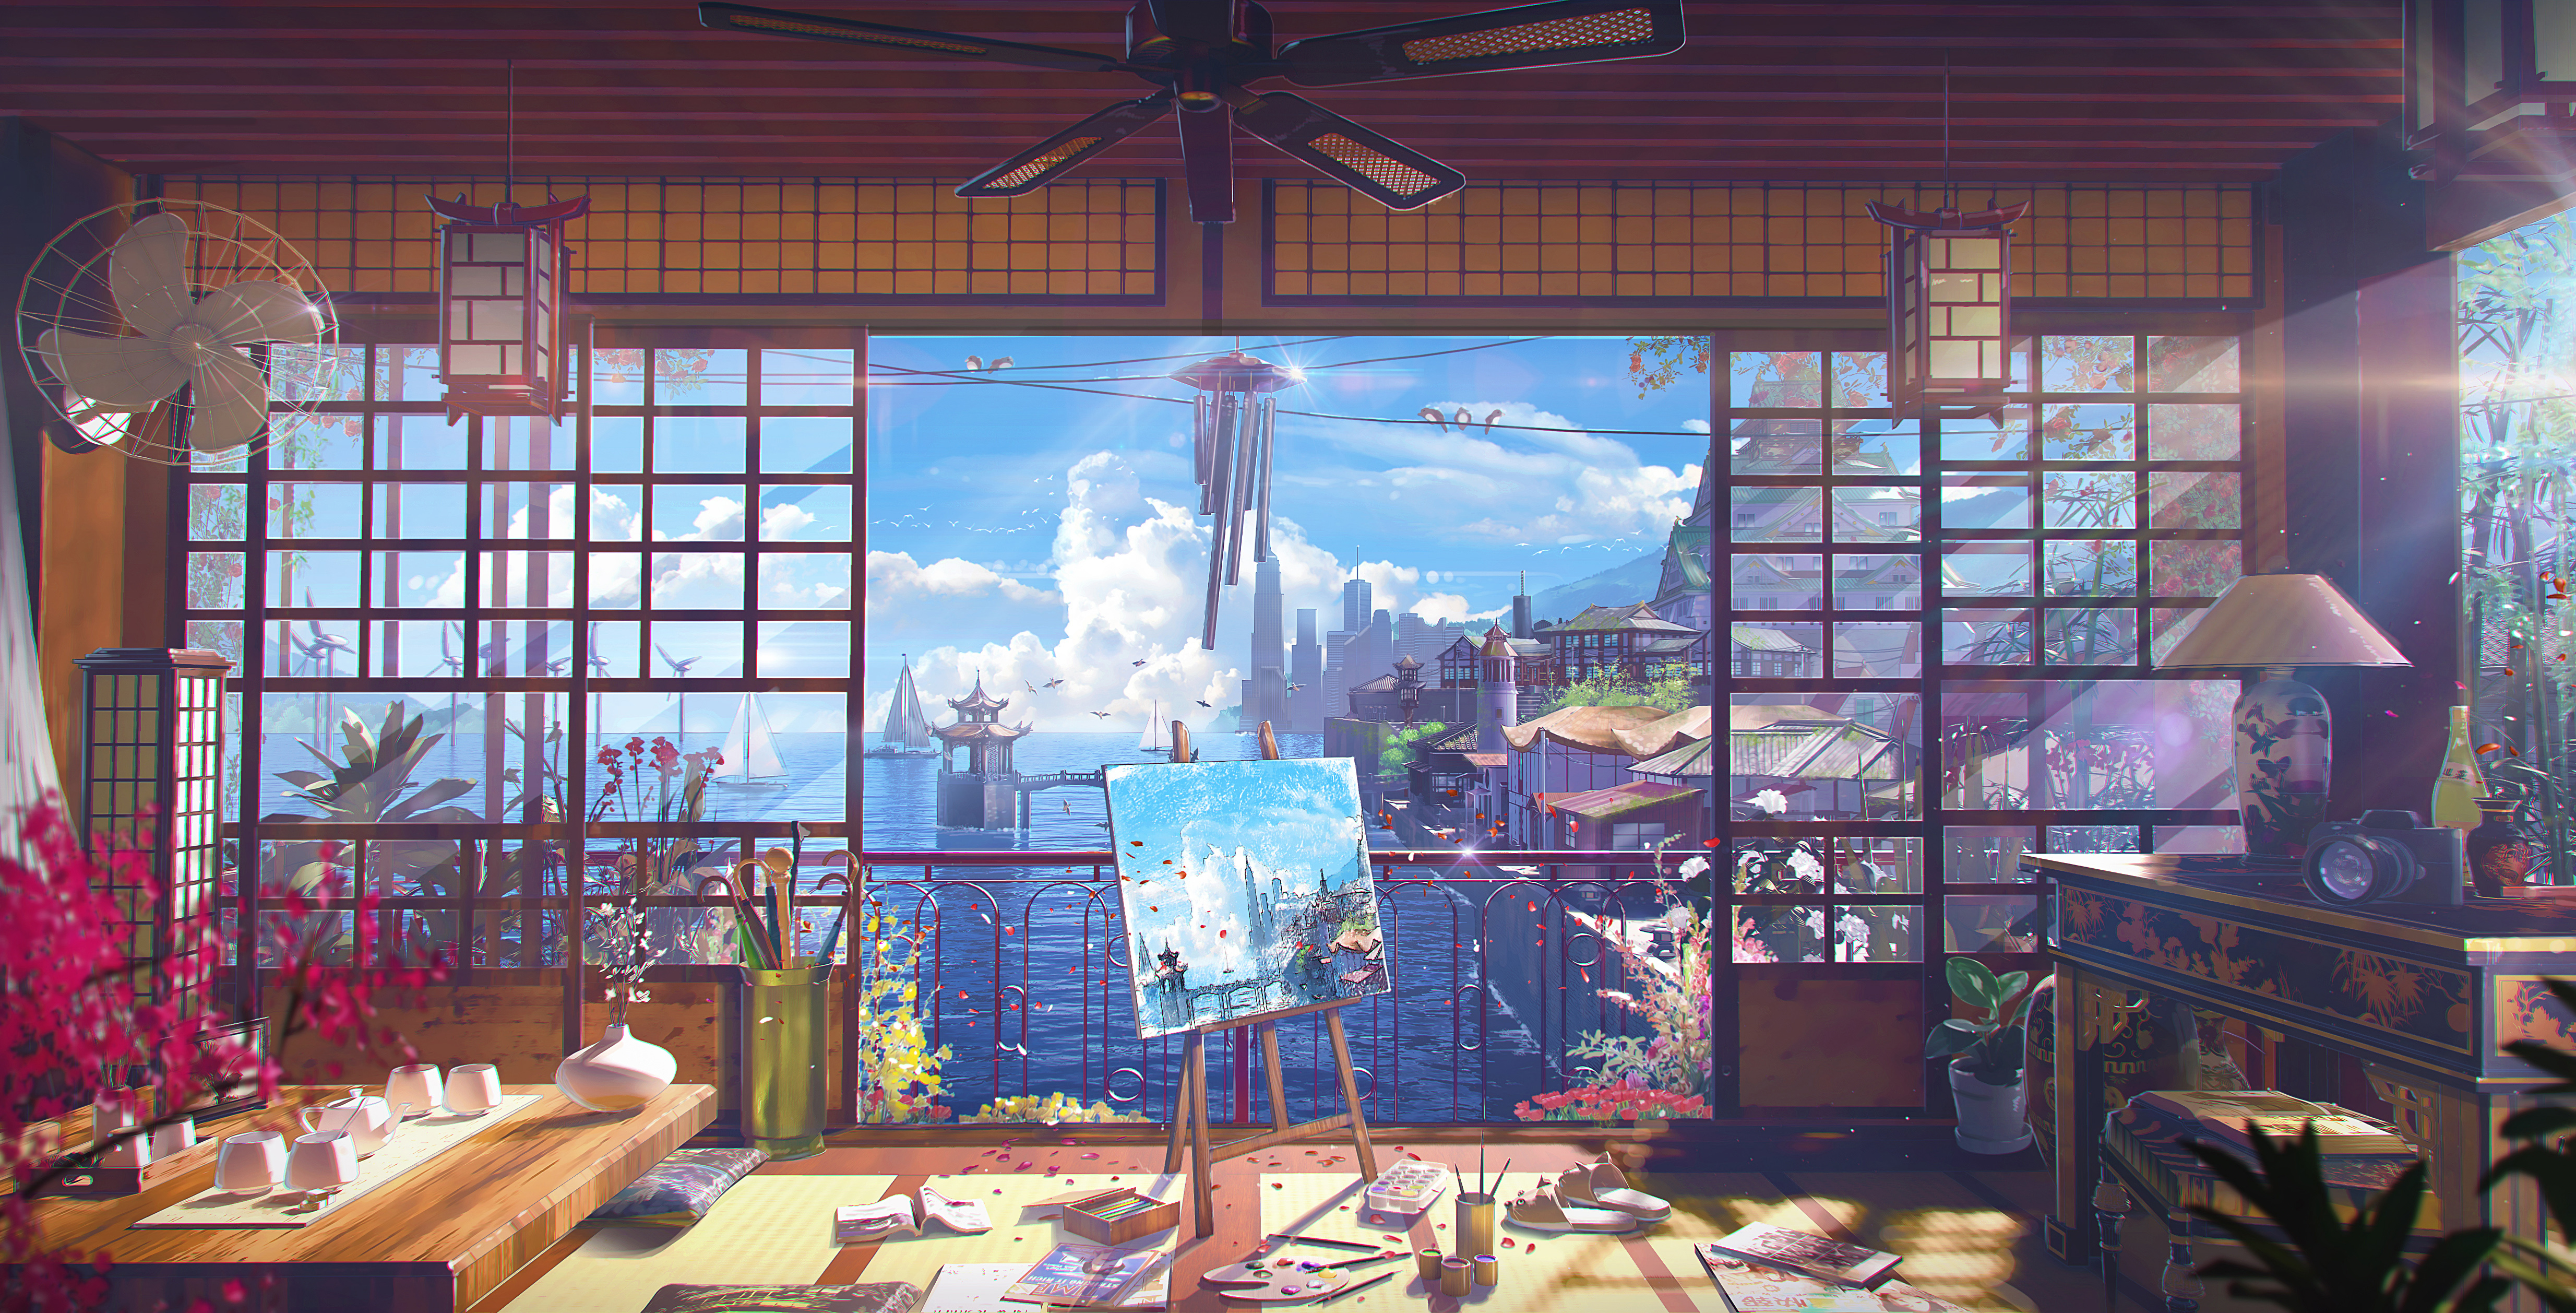 Anime 4936x2515 environment house sea clouds sky landscape lights High Noon